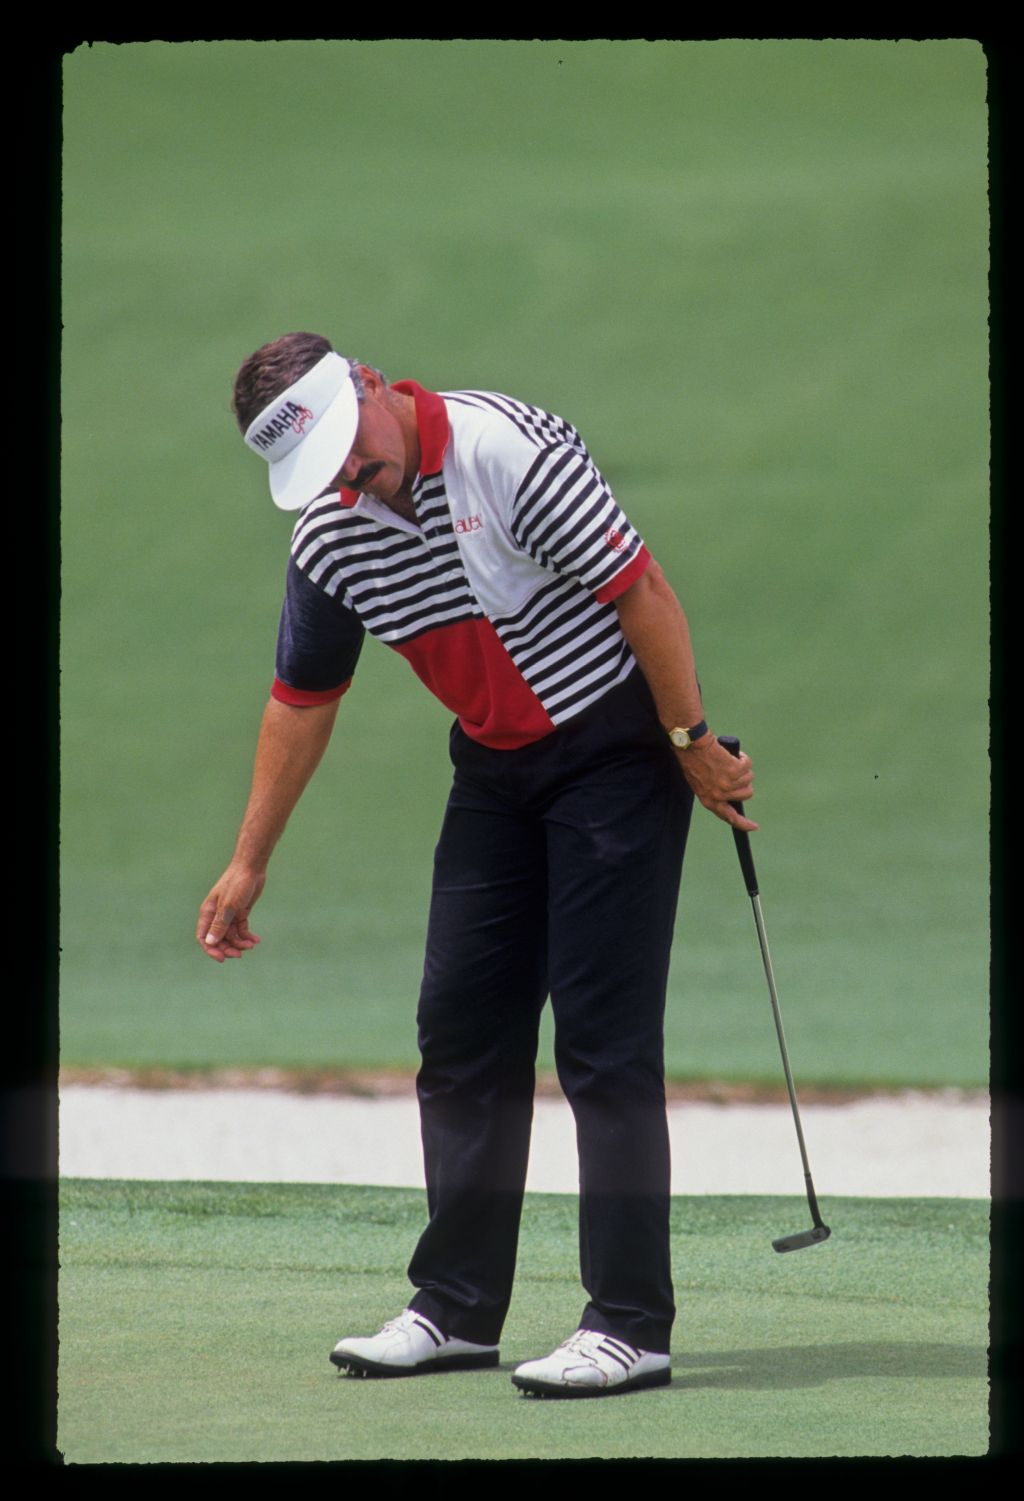 Scott Simpson willing his putt to drop during the 1991 Masters